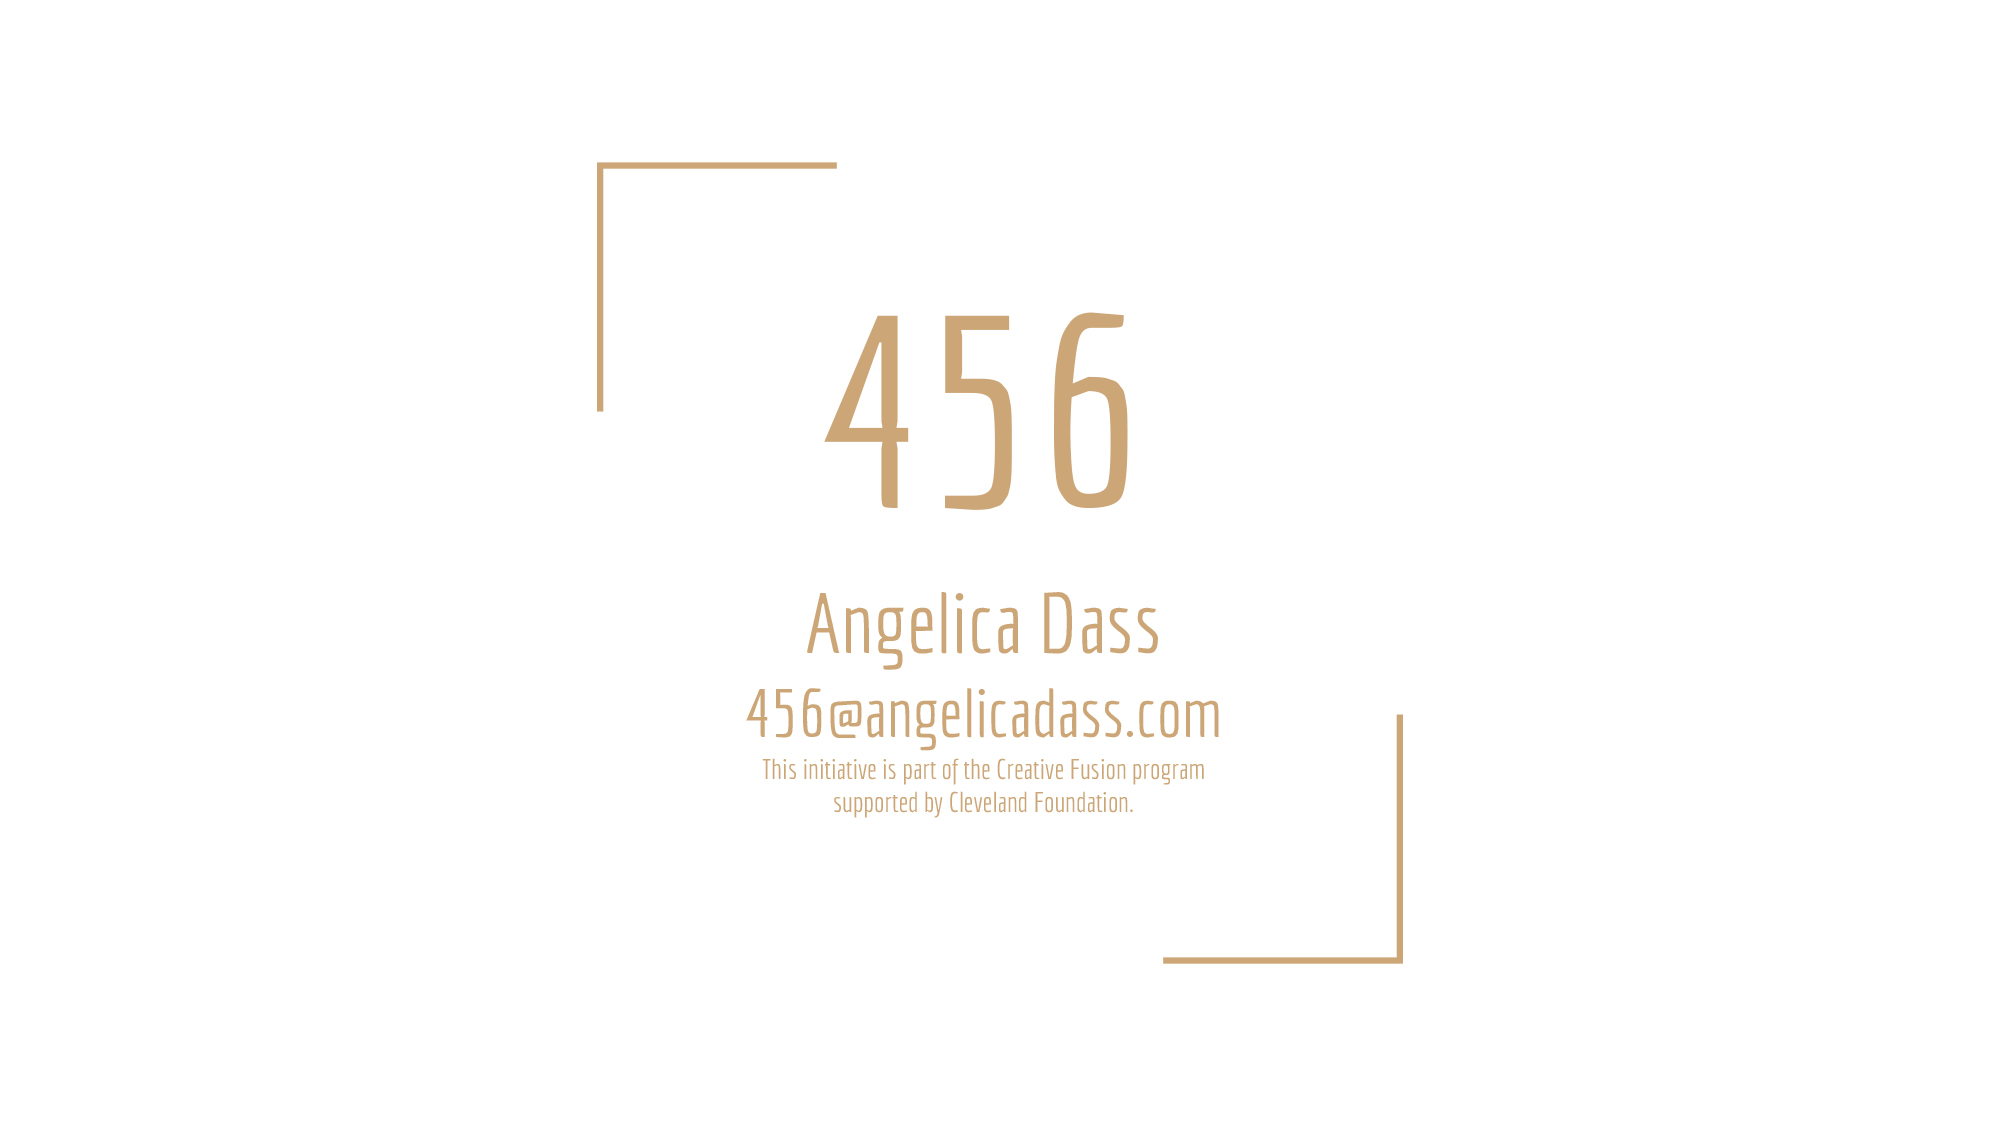 456-AngelicaDass-23 copia.jpg